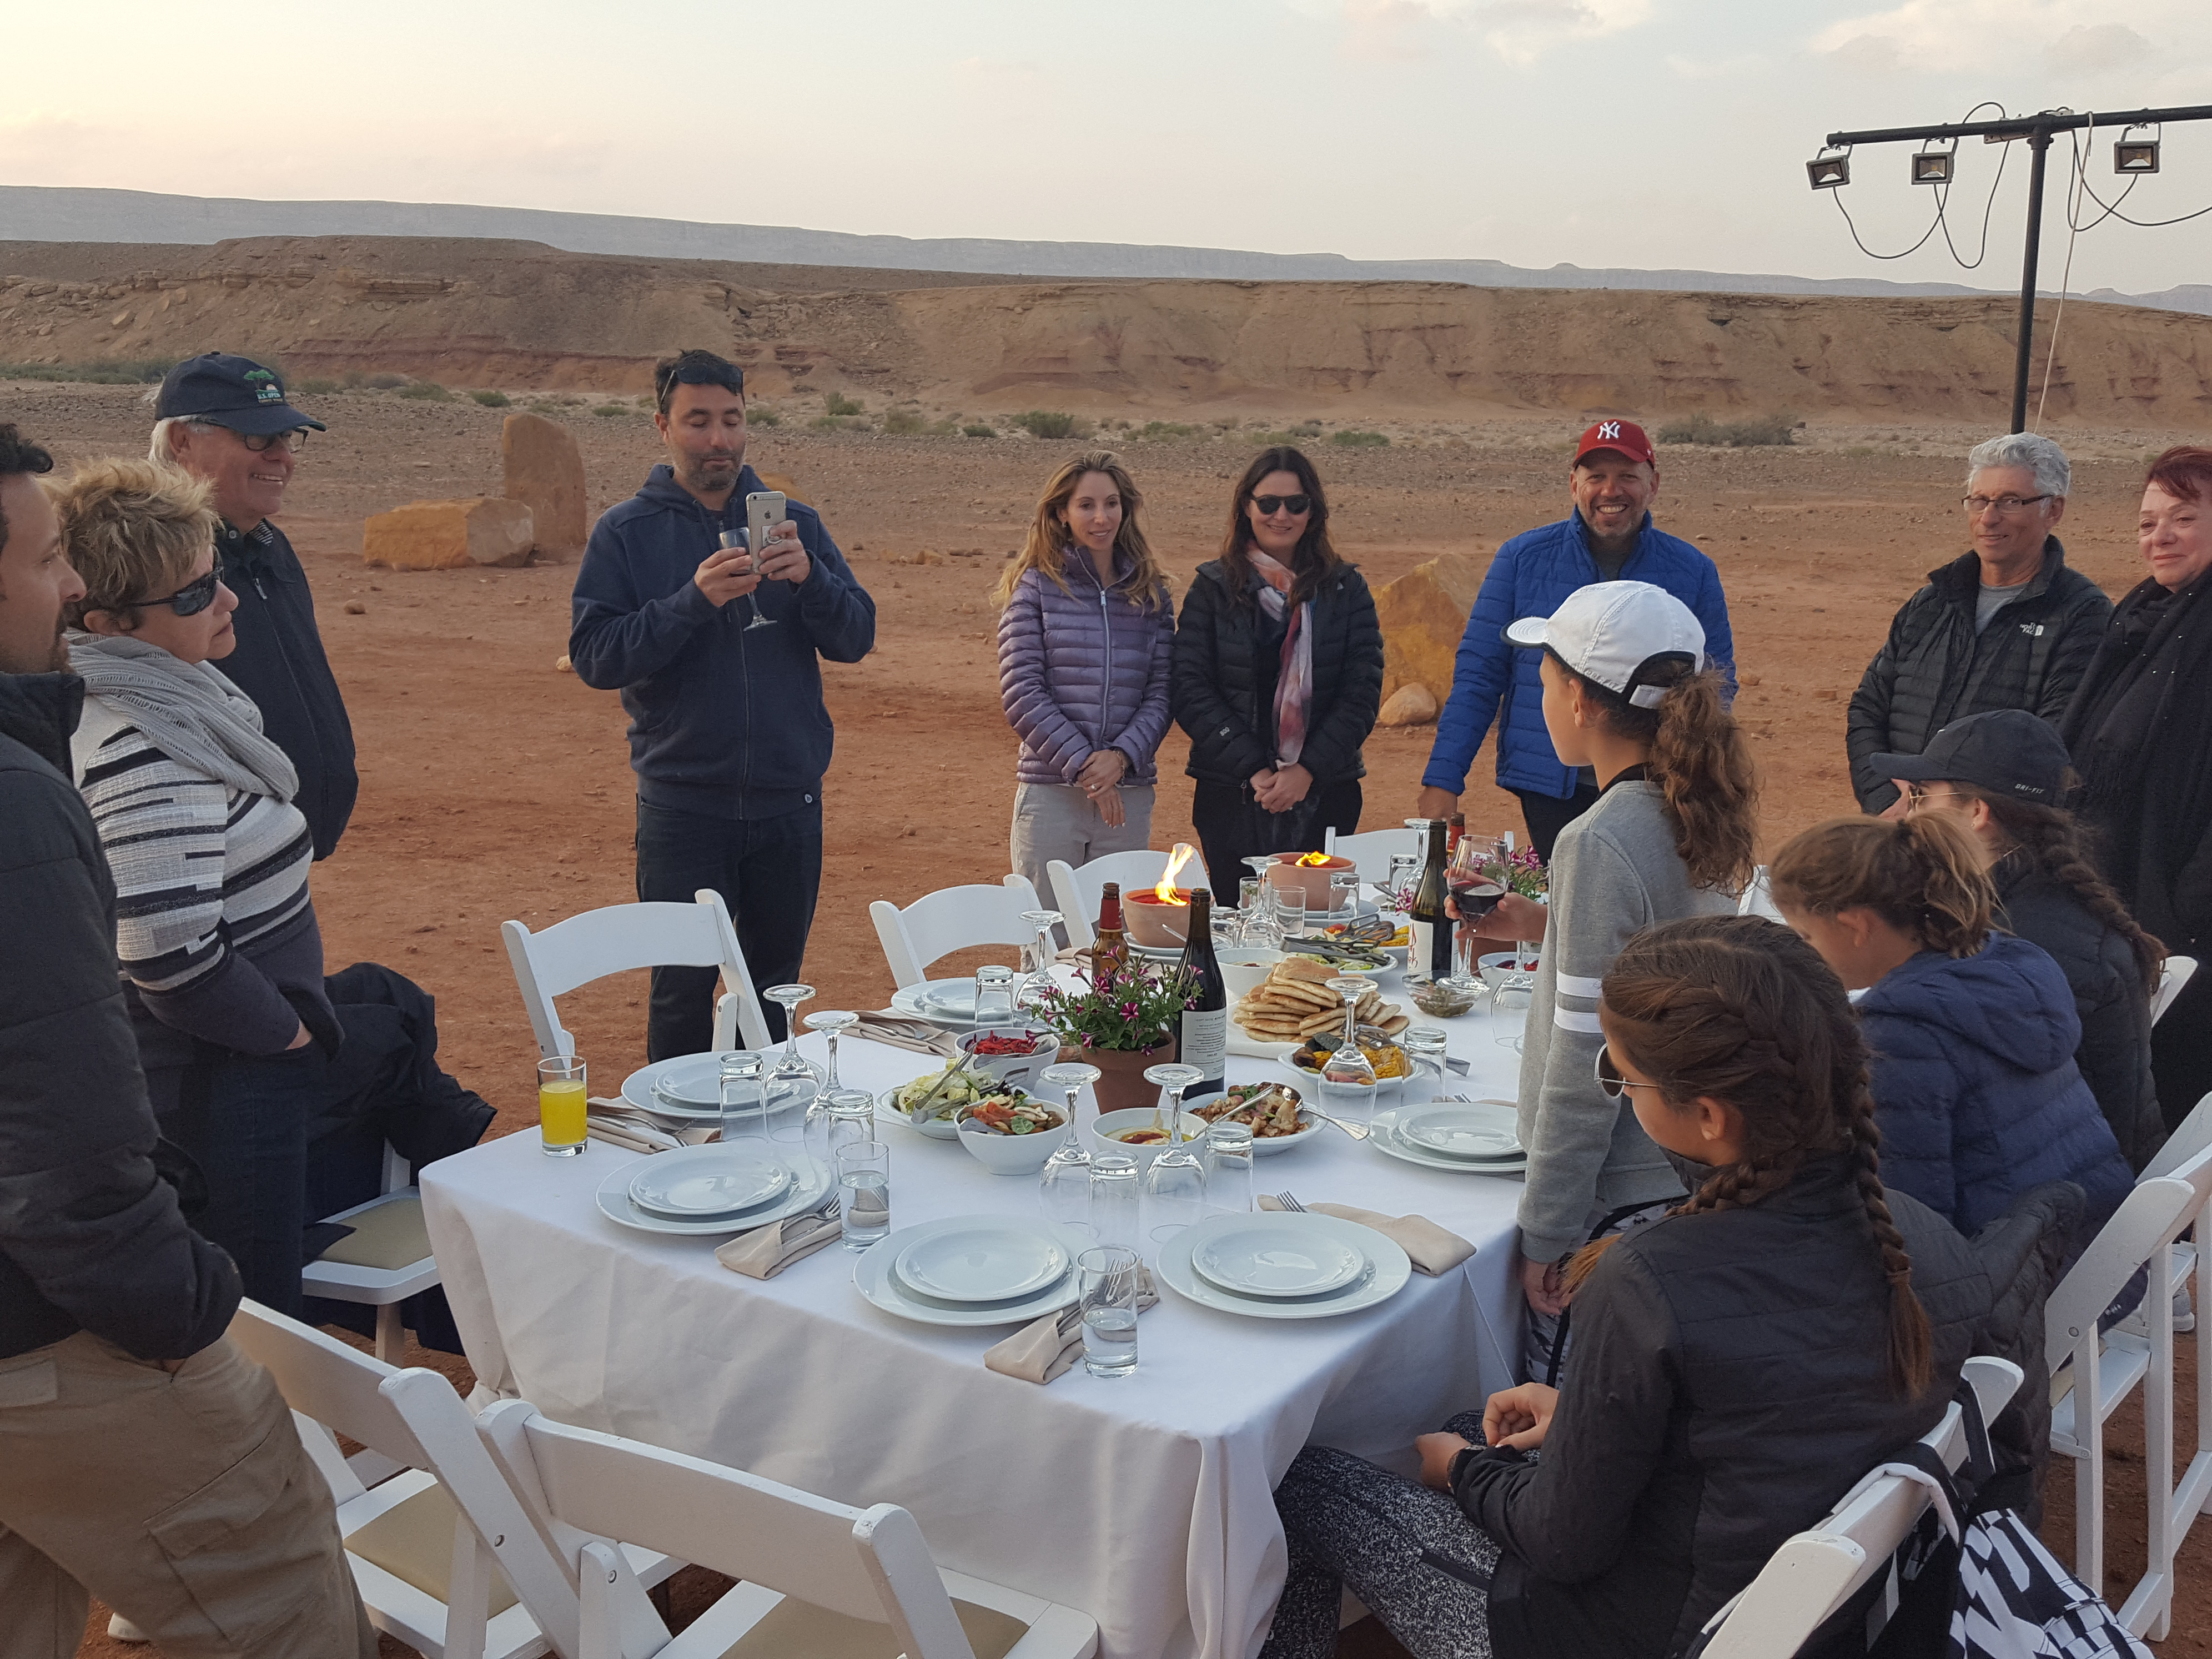 Special Birthday meal in the desert